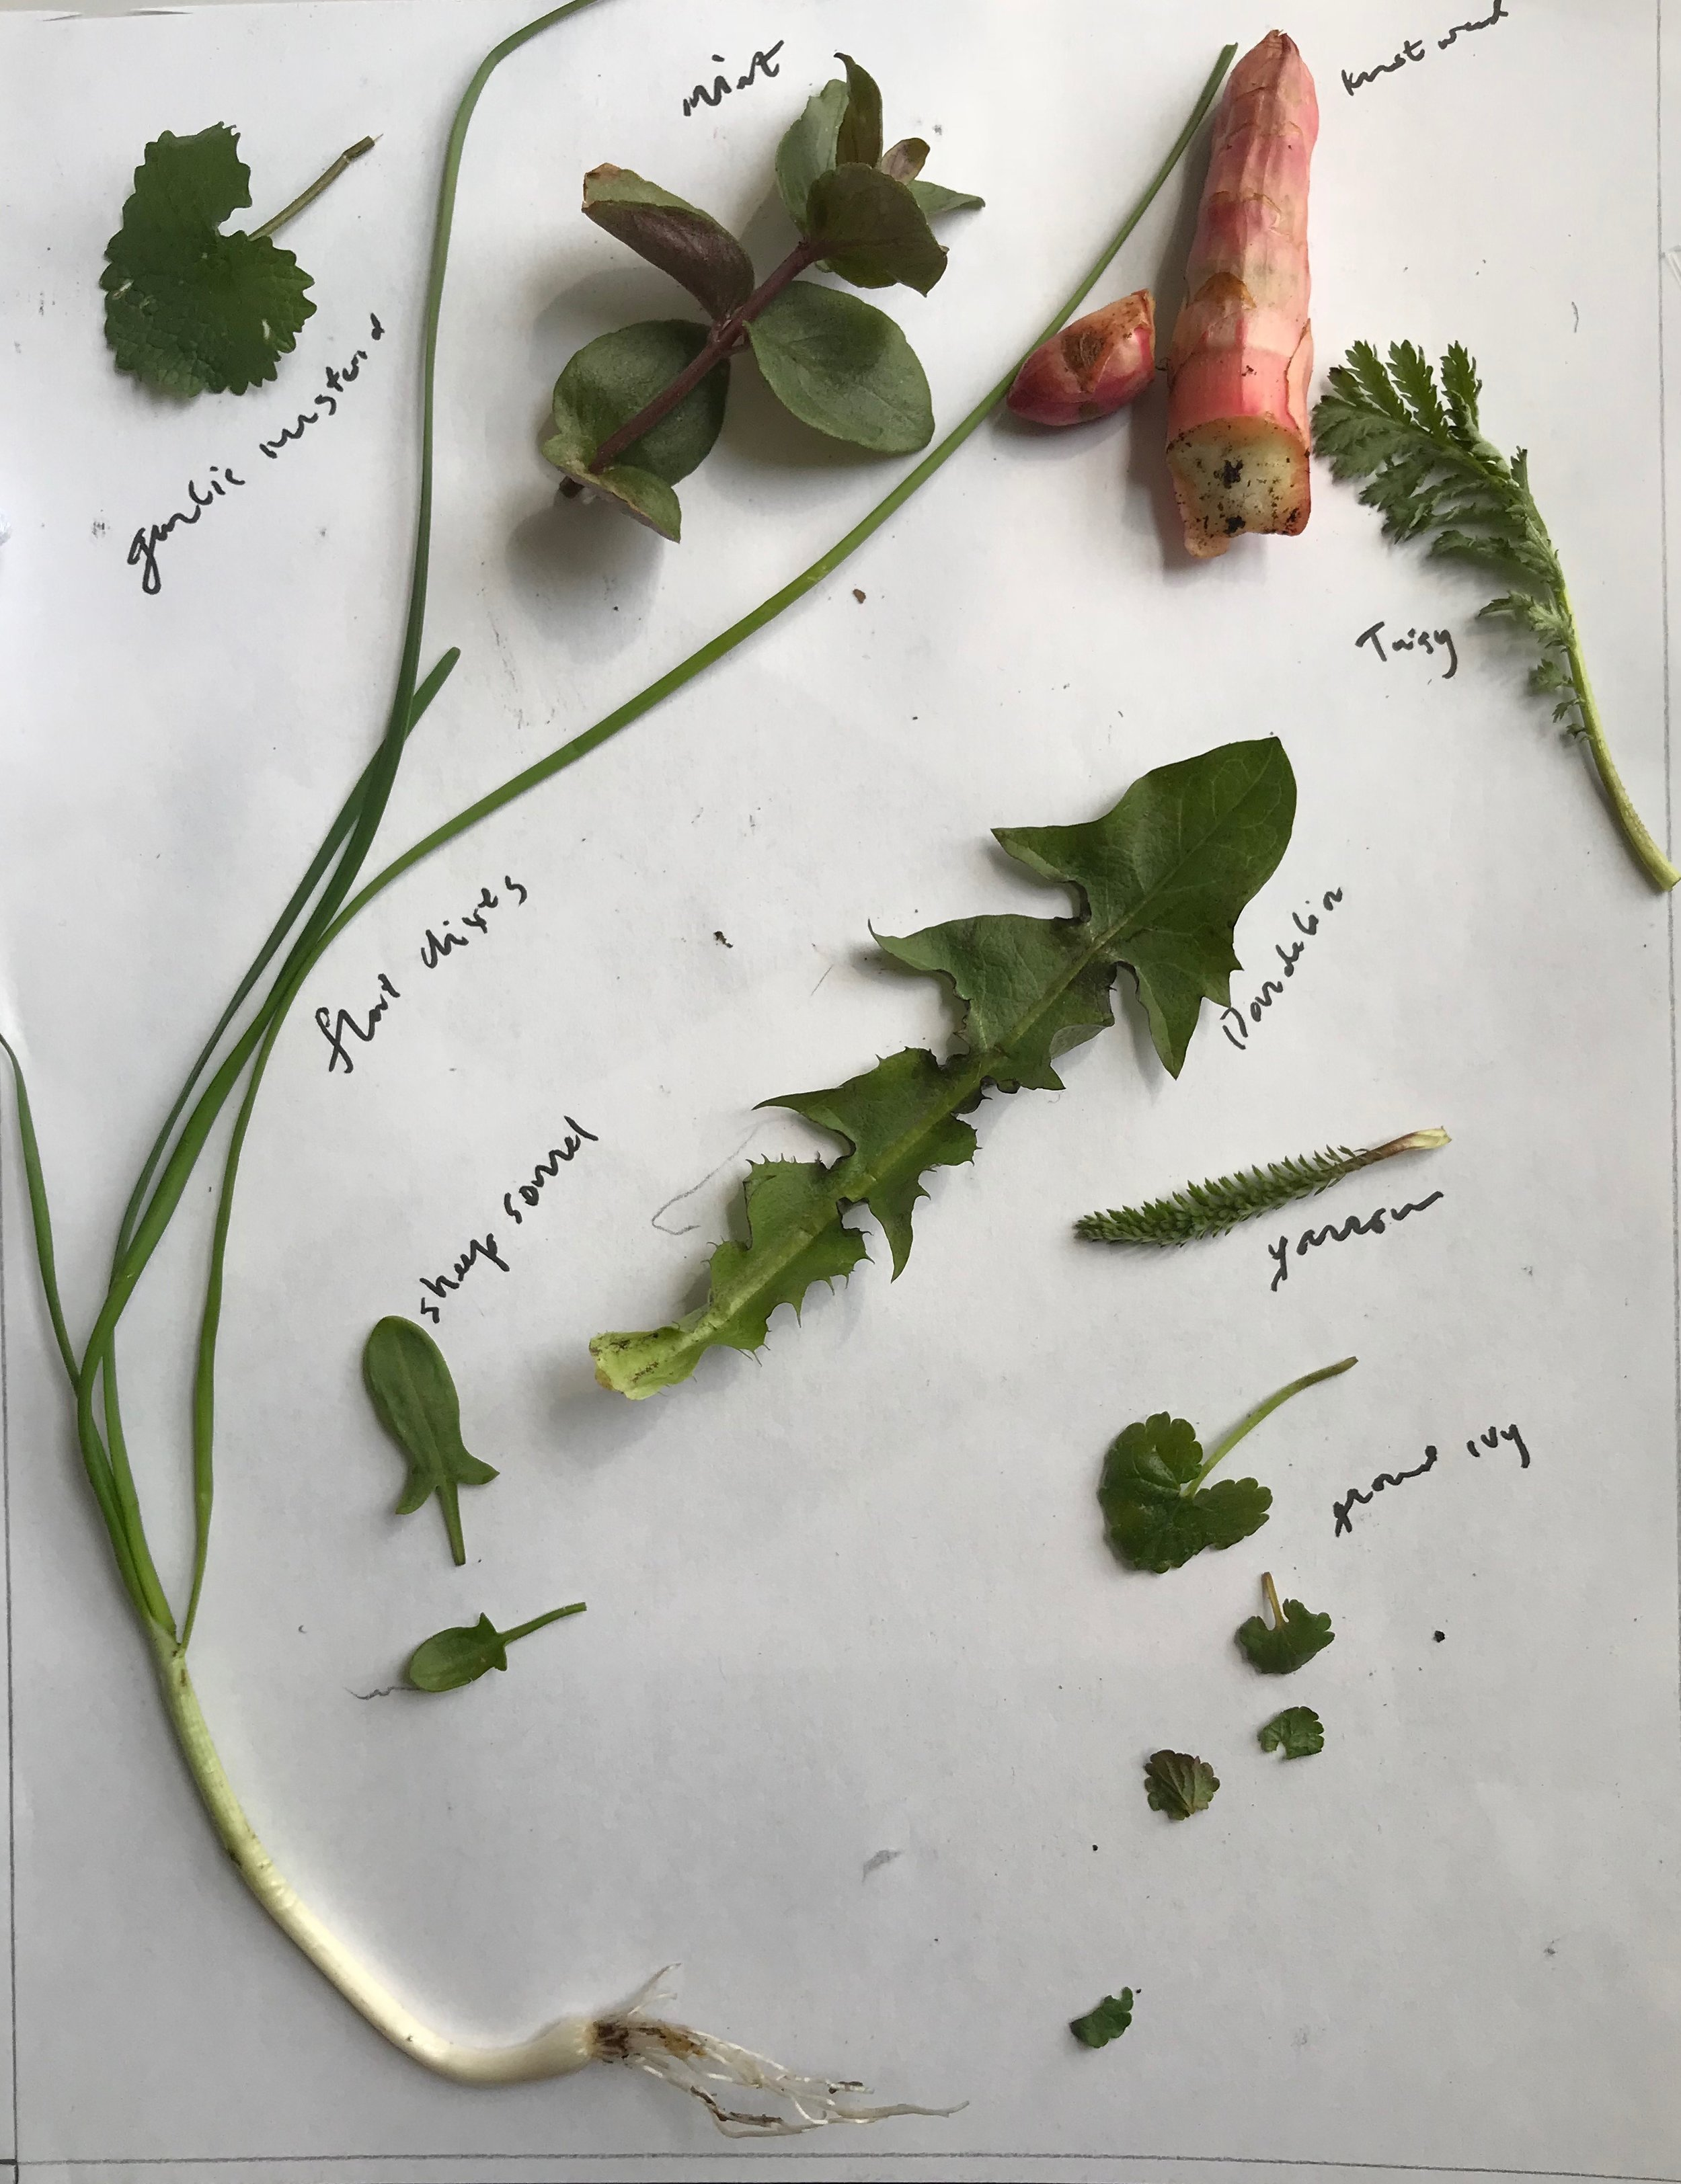 Early Spring 2018.  This is a small collection of some of the early spring edibles we are sure to find on a coming walk. Save the ramp and eat more chives, save your environment and eat the invasives like garlic mustard and knot weed. I especially like them when a bit older, so the mustard is like tiny broccoli heads, and the knot weed is juicy, sour and hollow!